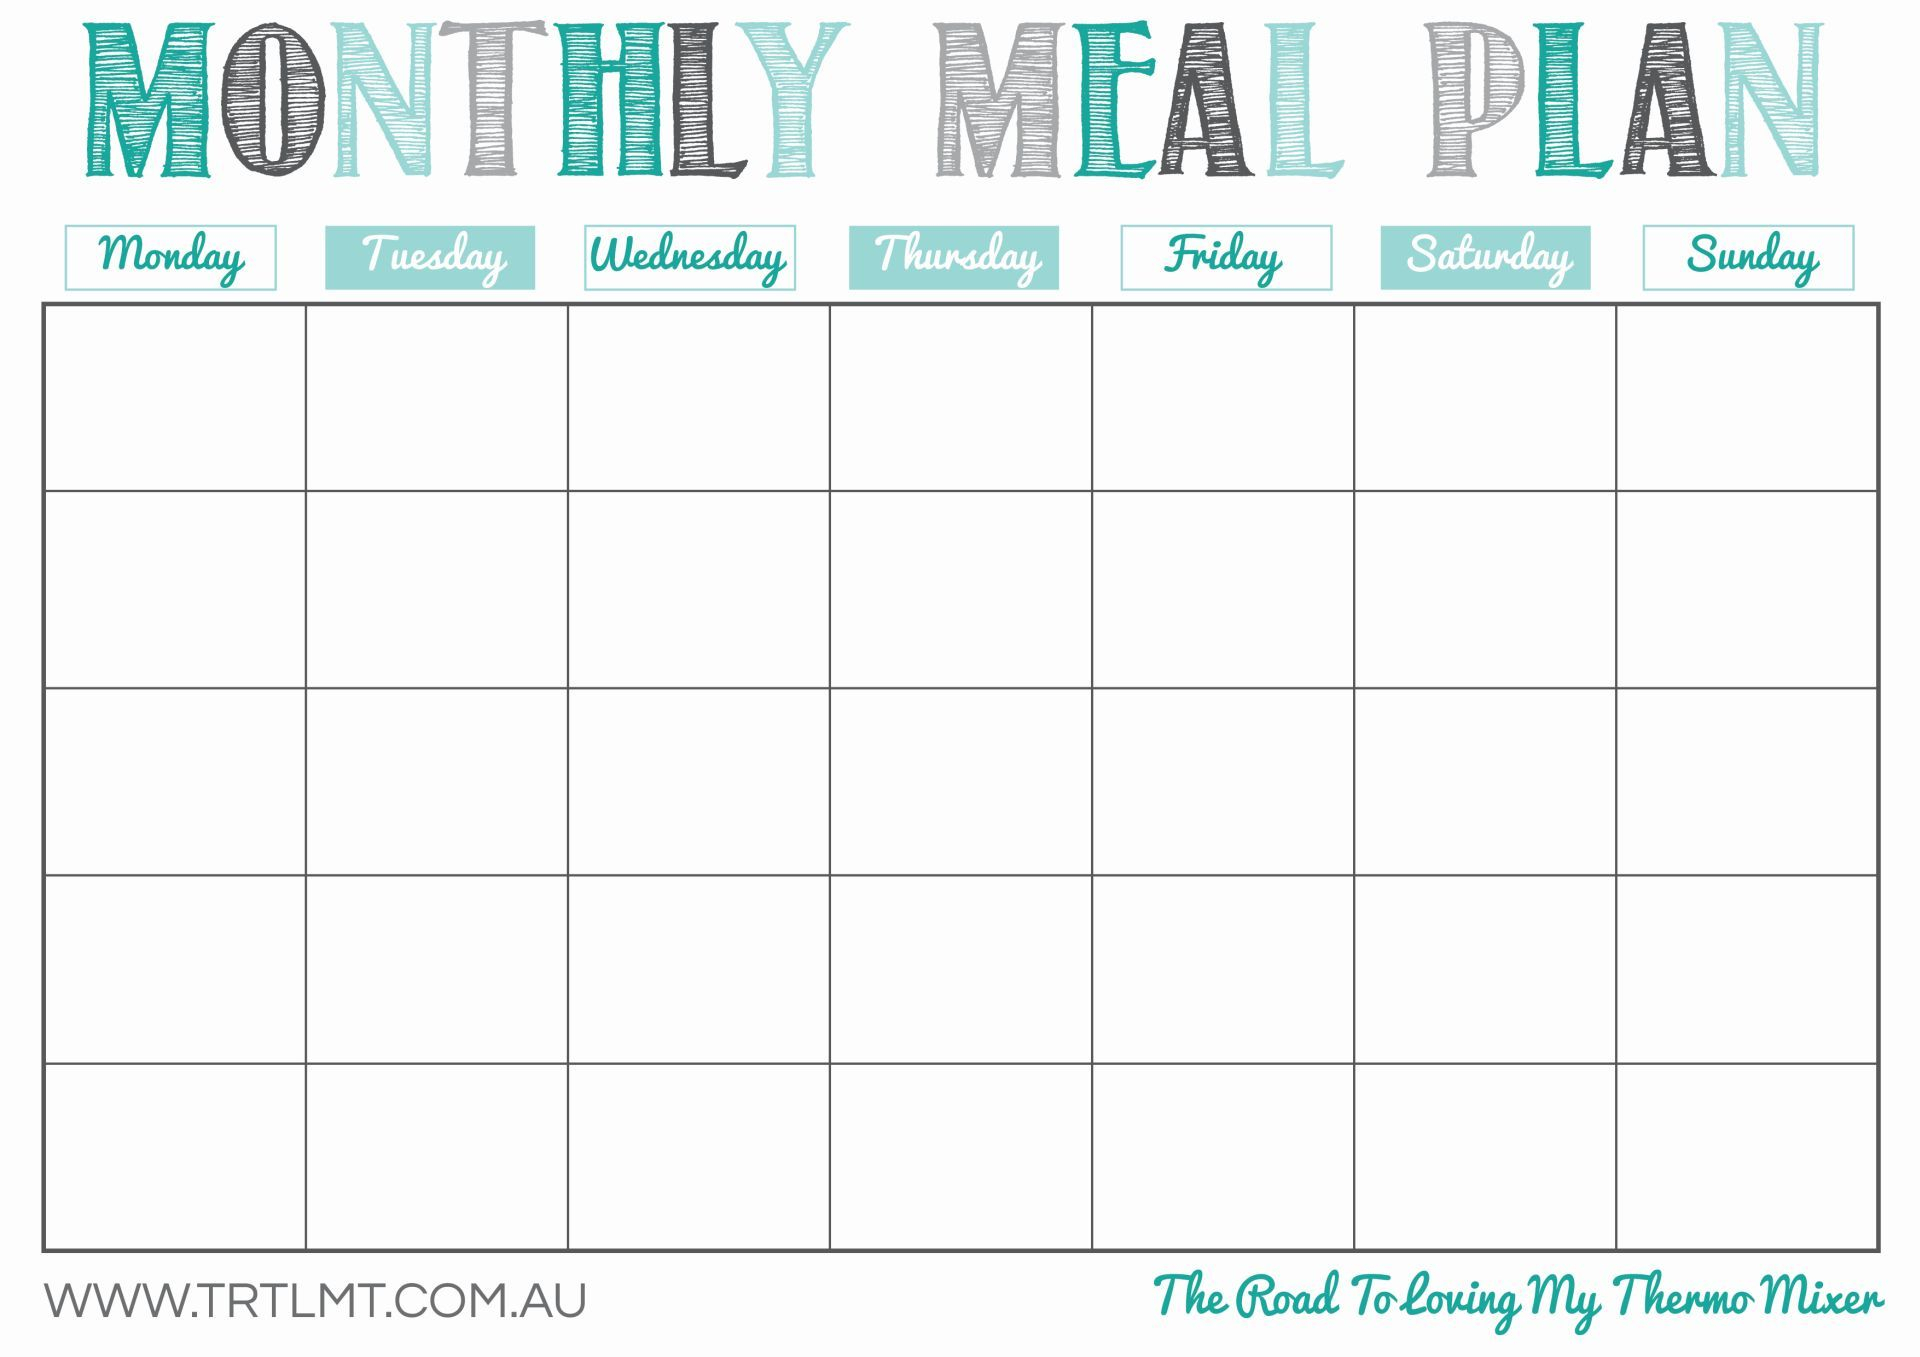 030 Monthly Meal Planner Template Free Menu Awesome Ideas Within Meal Plan Template Word